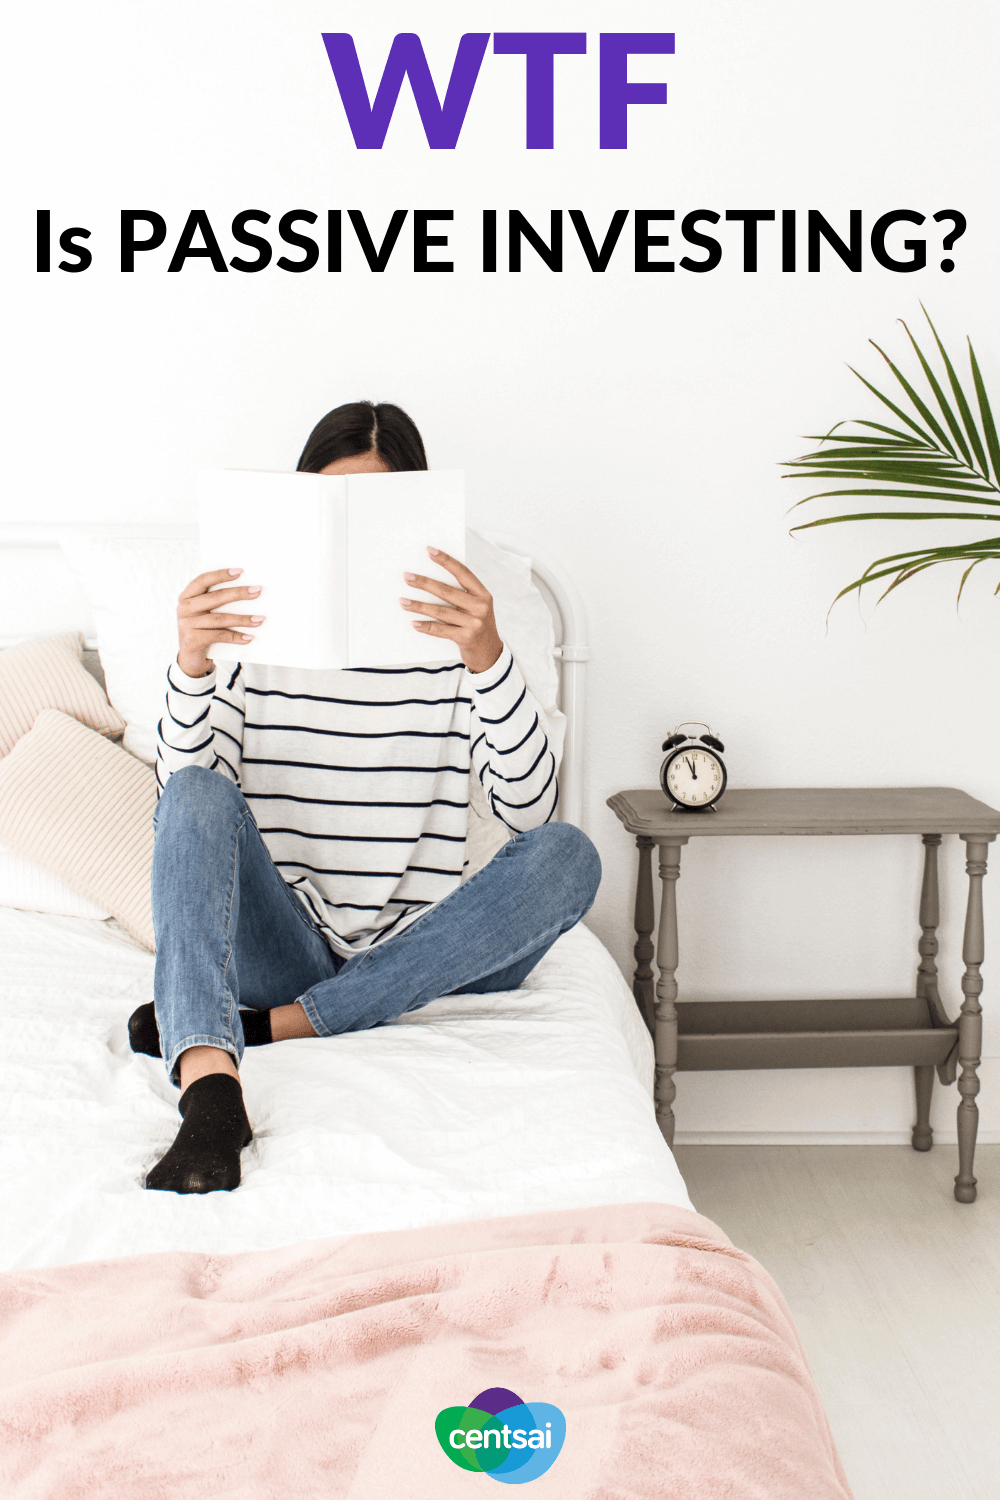 WTF Is Passive Investing? Ever wanted to make money on the stock market, but feel like you don't have enough time to do it? Then check out how passive investing works. #Passiveinvesting #Investing #investment #makemoney #stockmarket